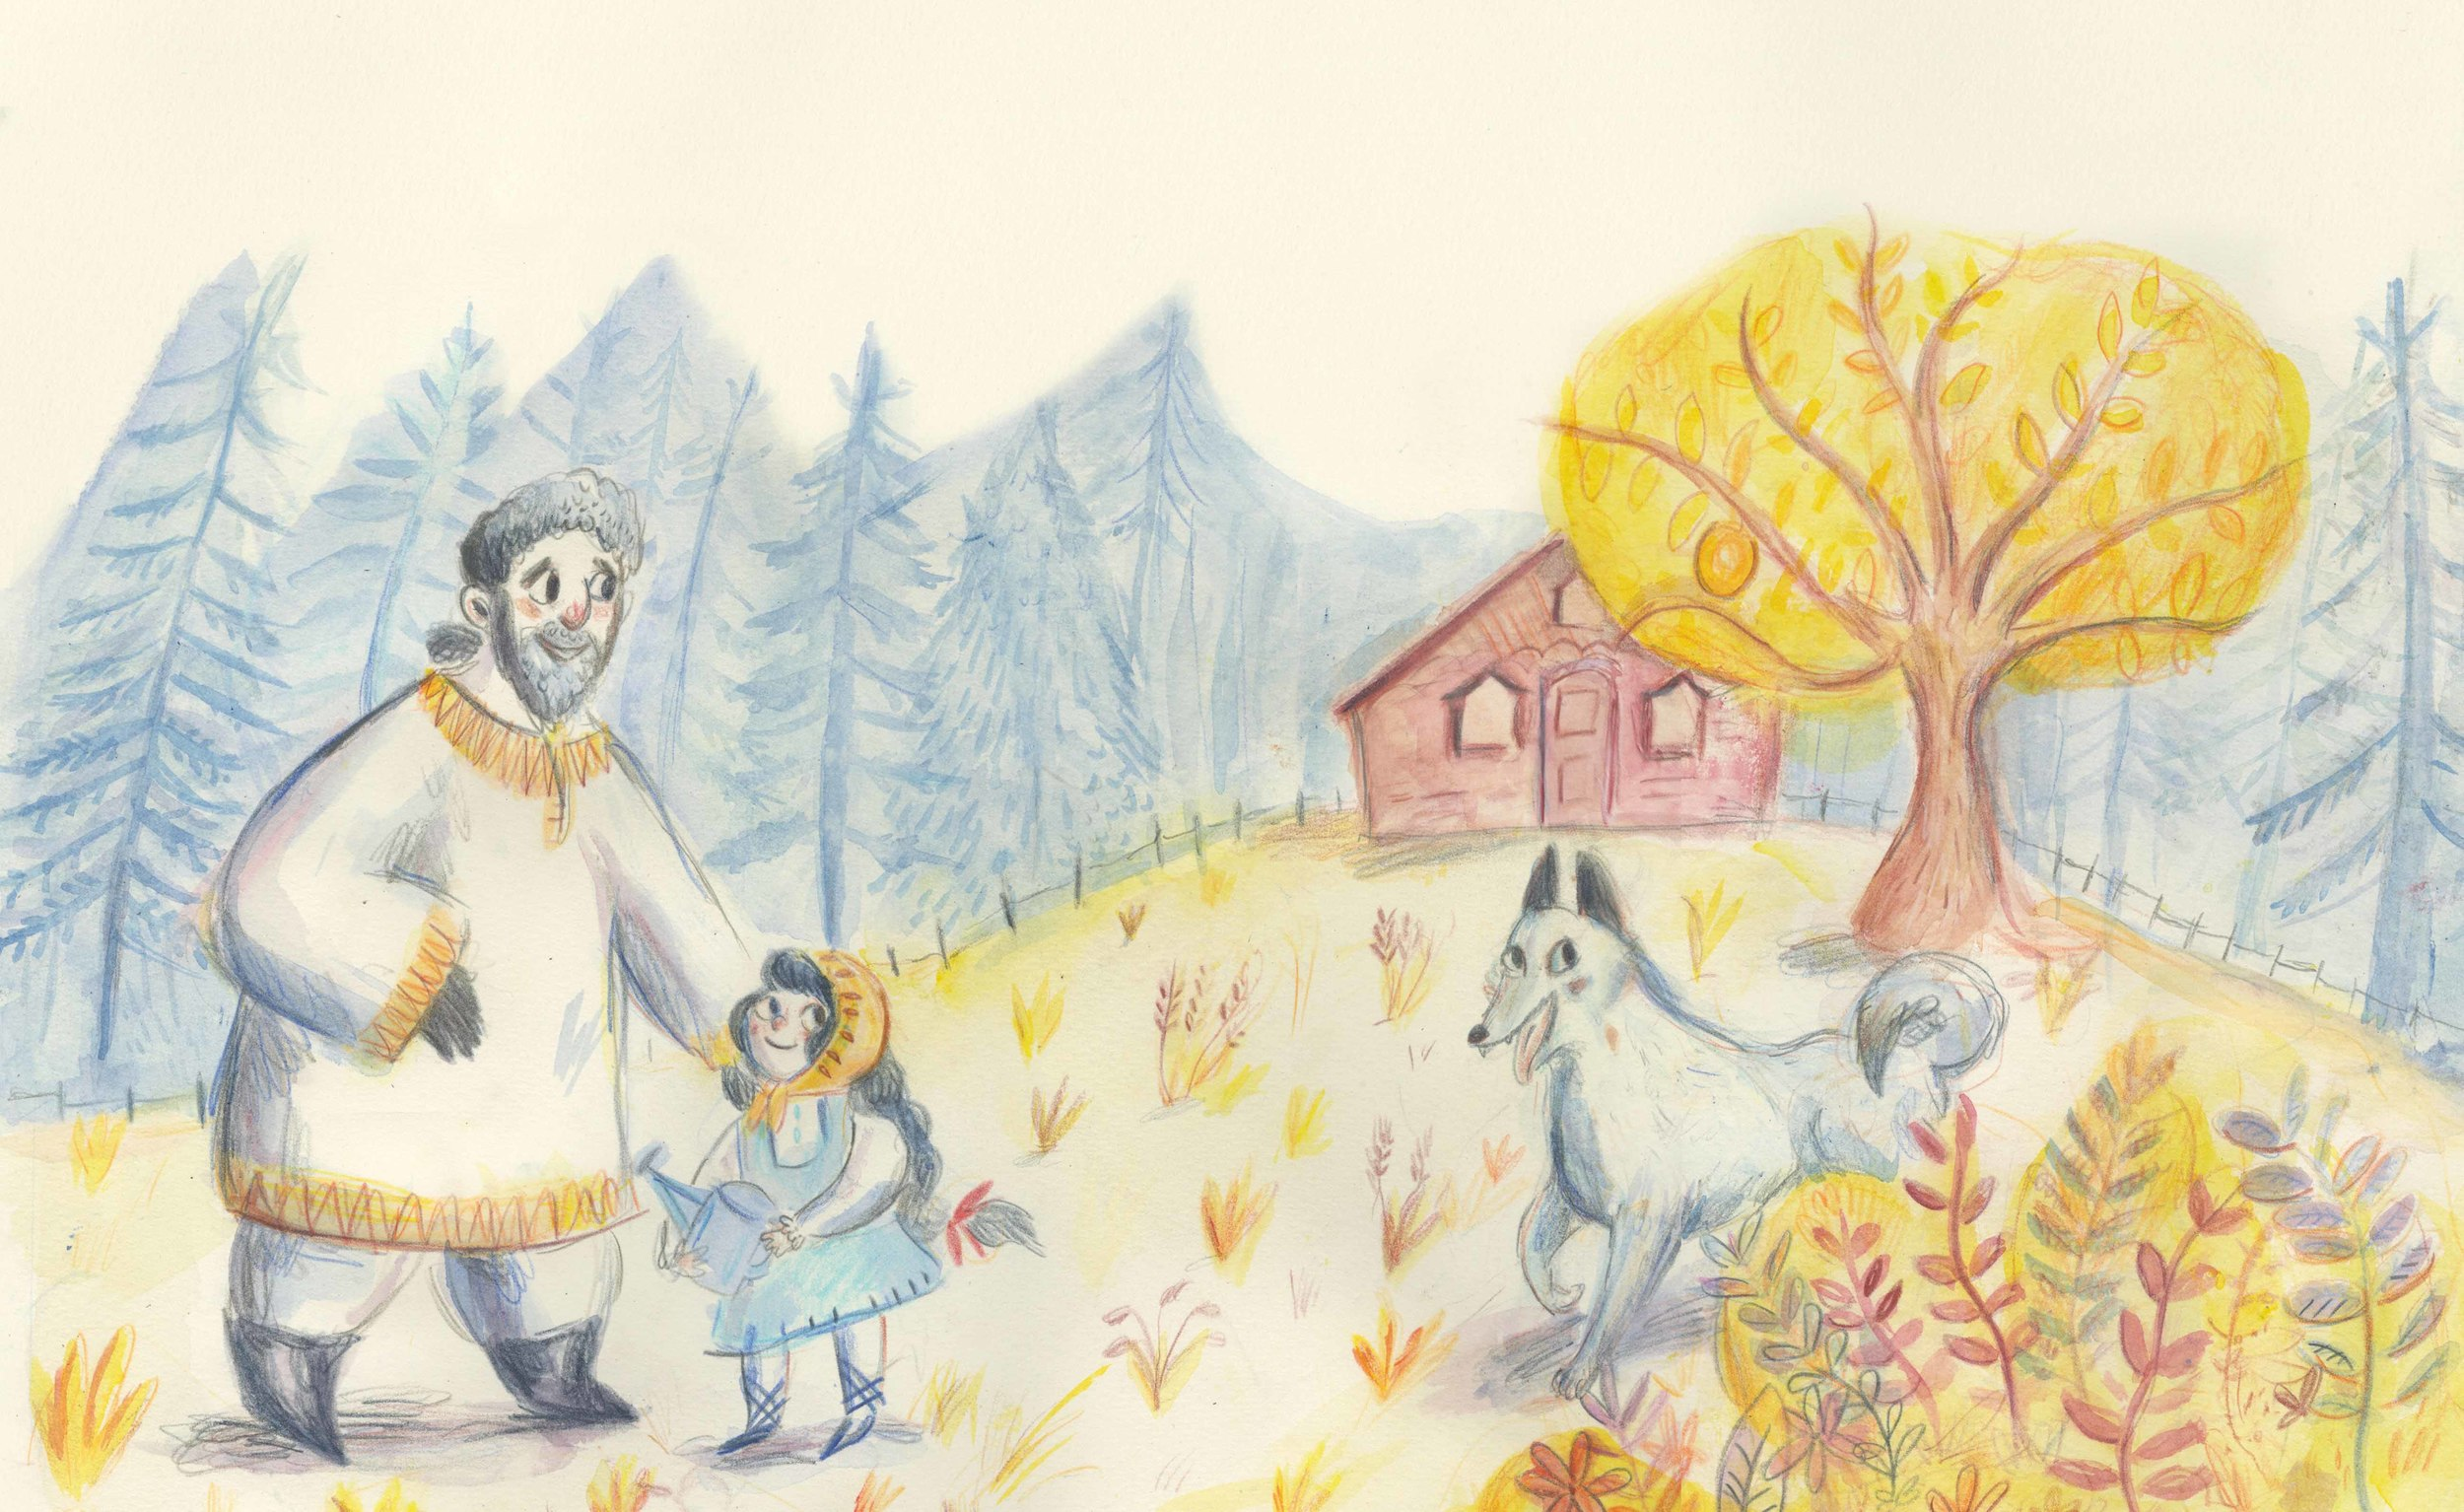 Double page spread from my children's book 'Ivana and the Firebird'.